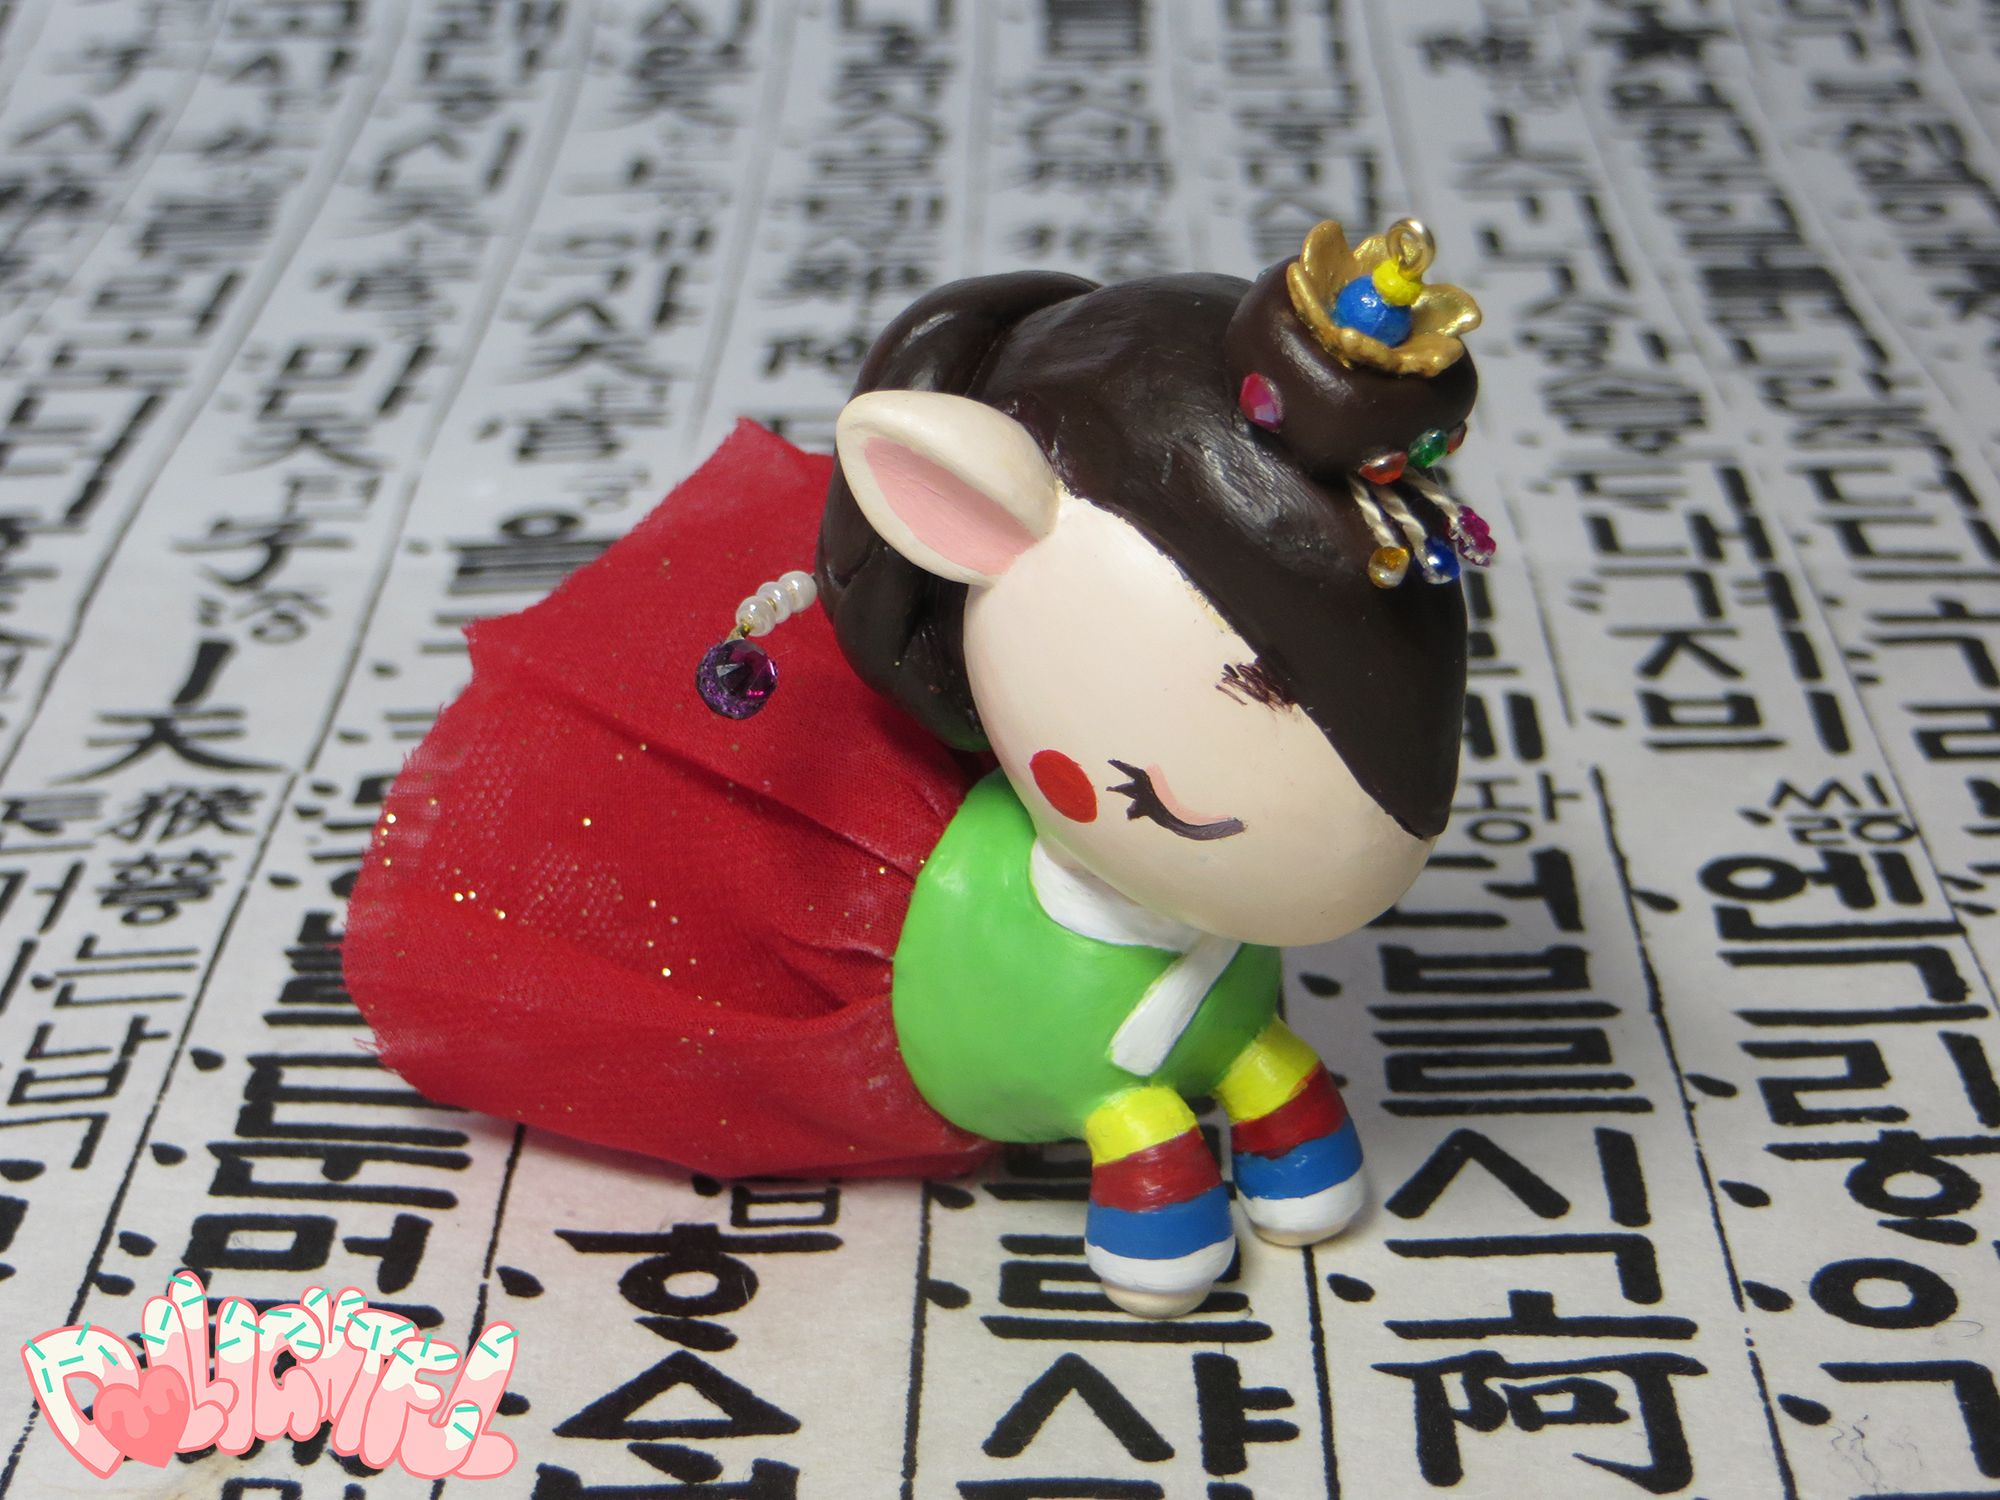 Unicorno Korean Bridal Hanbok 한국 작은 한복 유니콘 장난감 Custom Toy by Dollightful